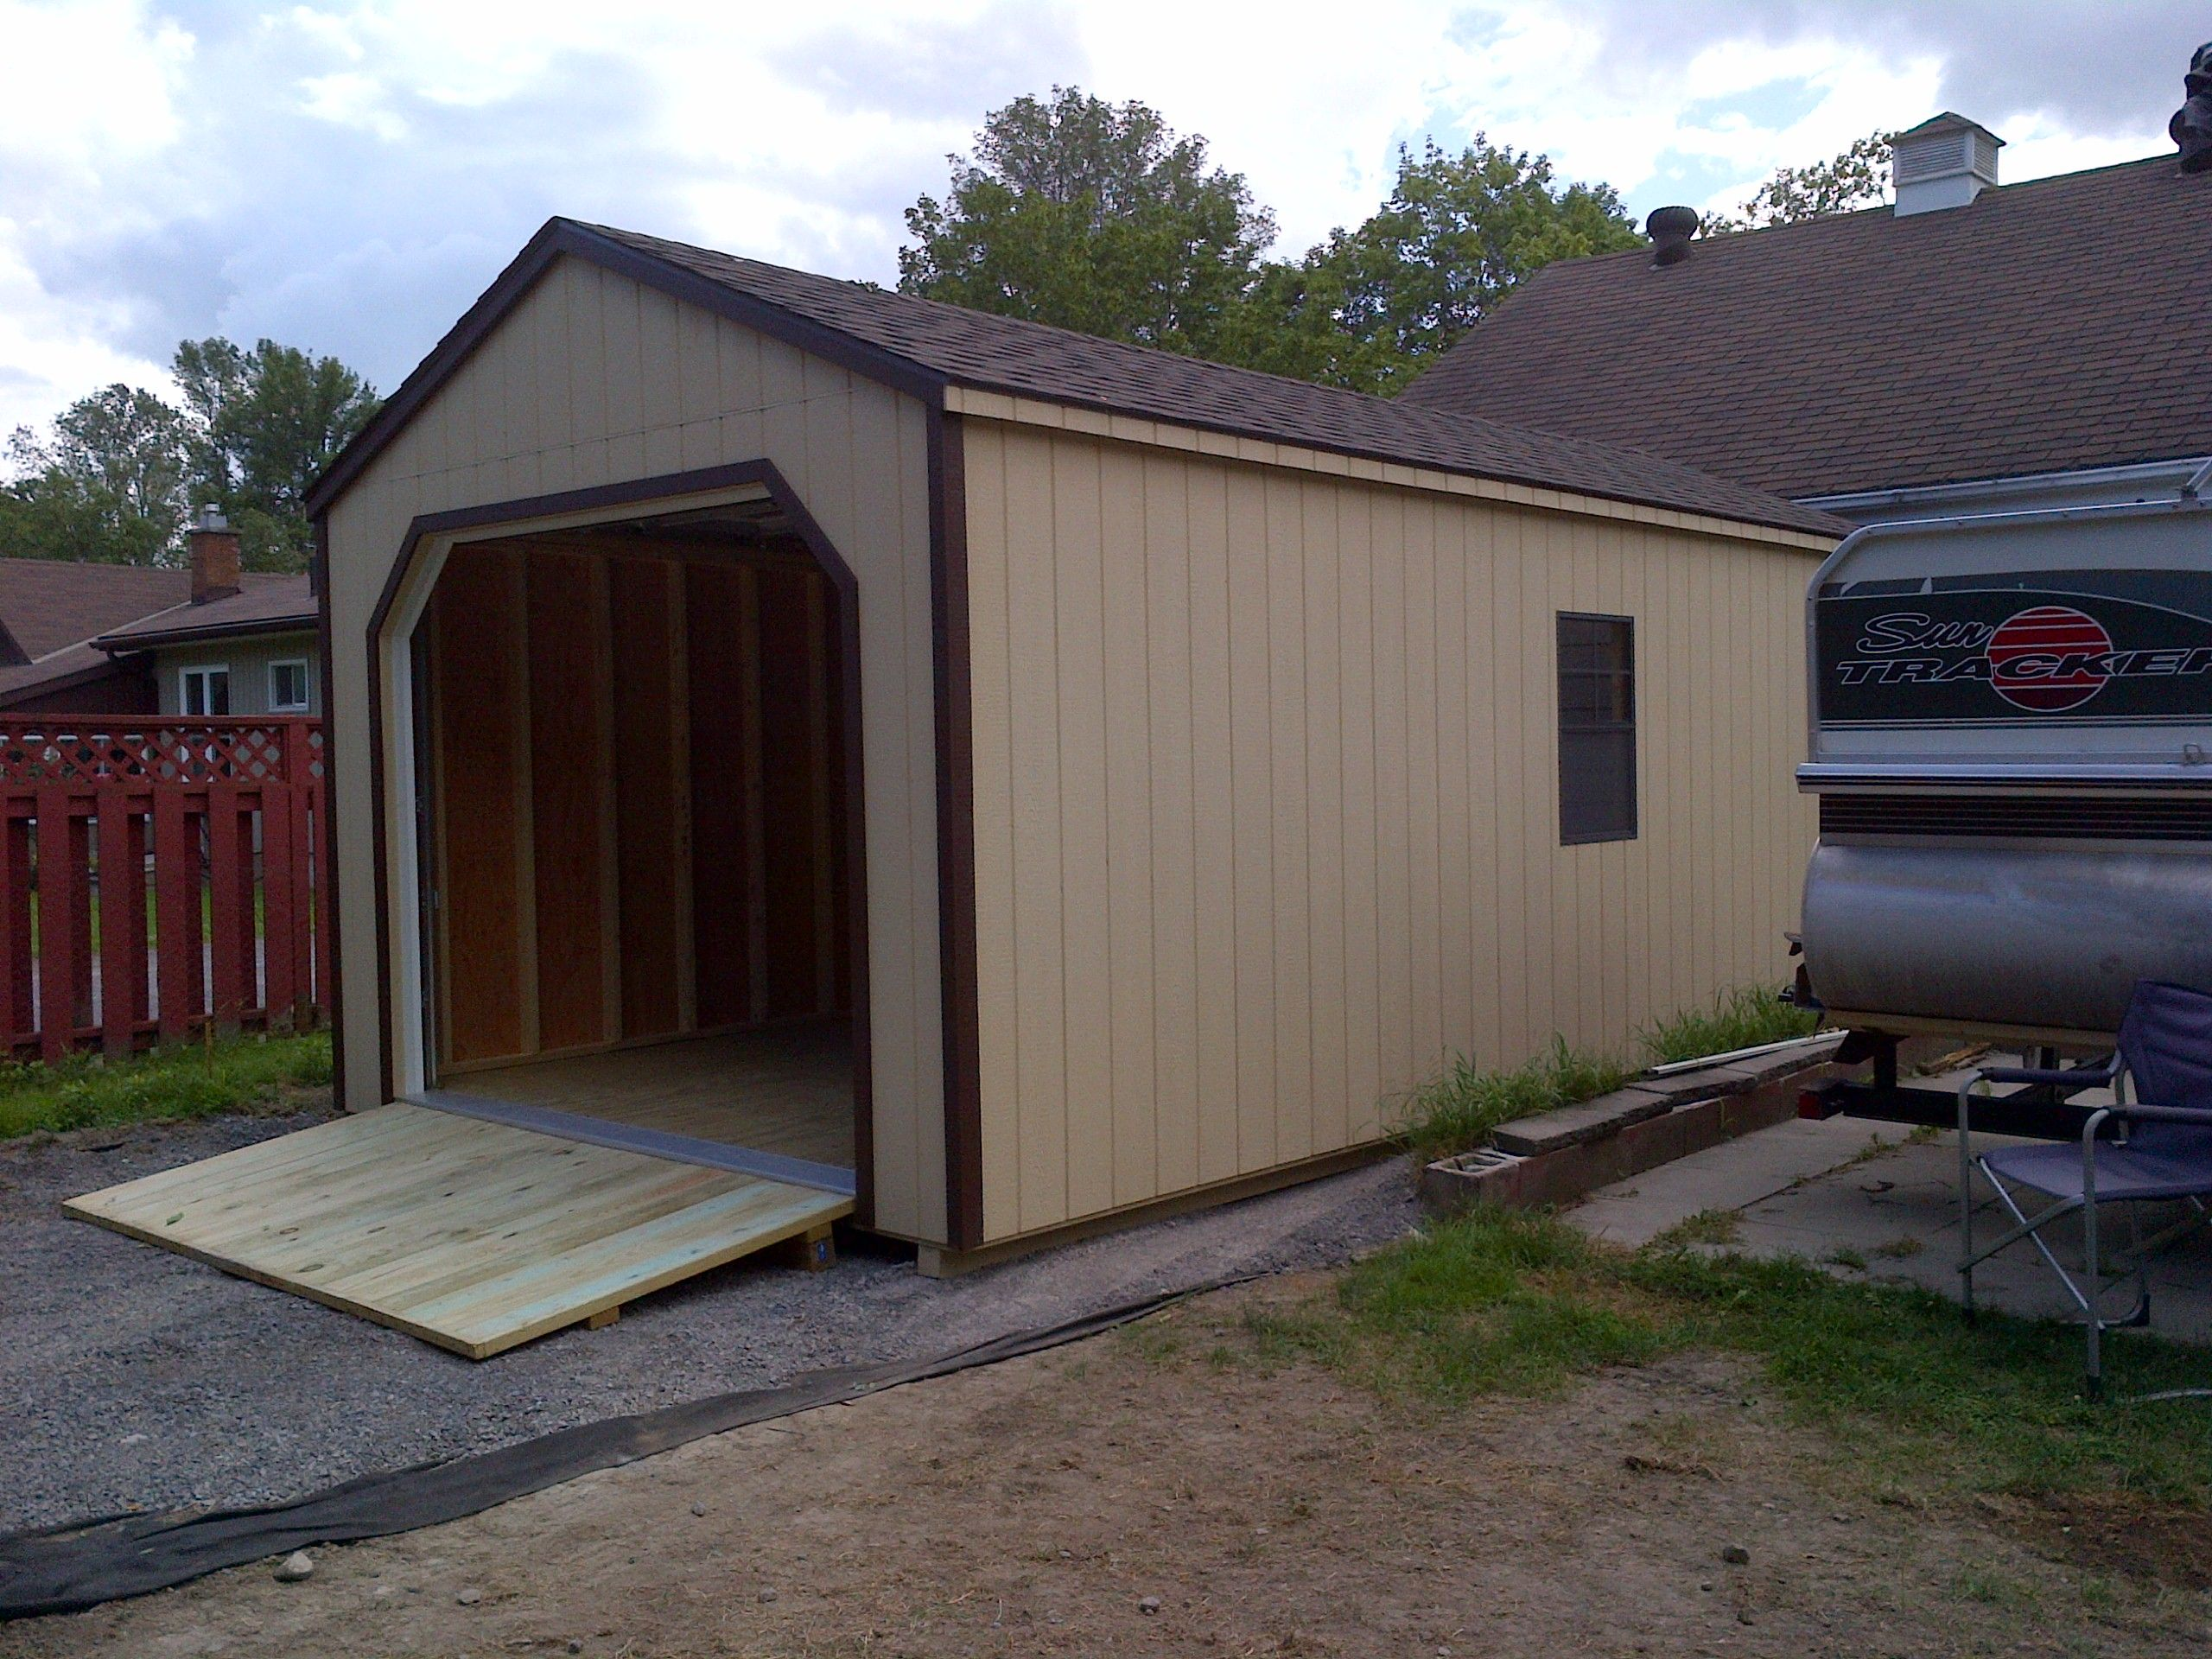 12' X 20' Wooden Portable Garage - Delivered Fully Assembled and Ready for Immediate Use near Belleville ON...Visit NorthCountrySheds.com for more info..